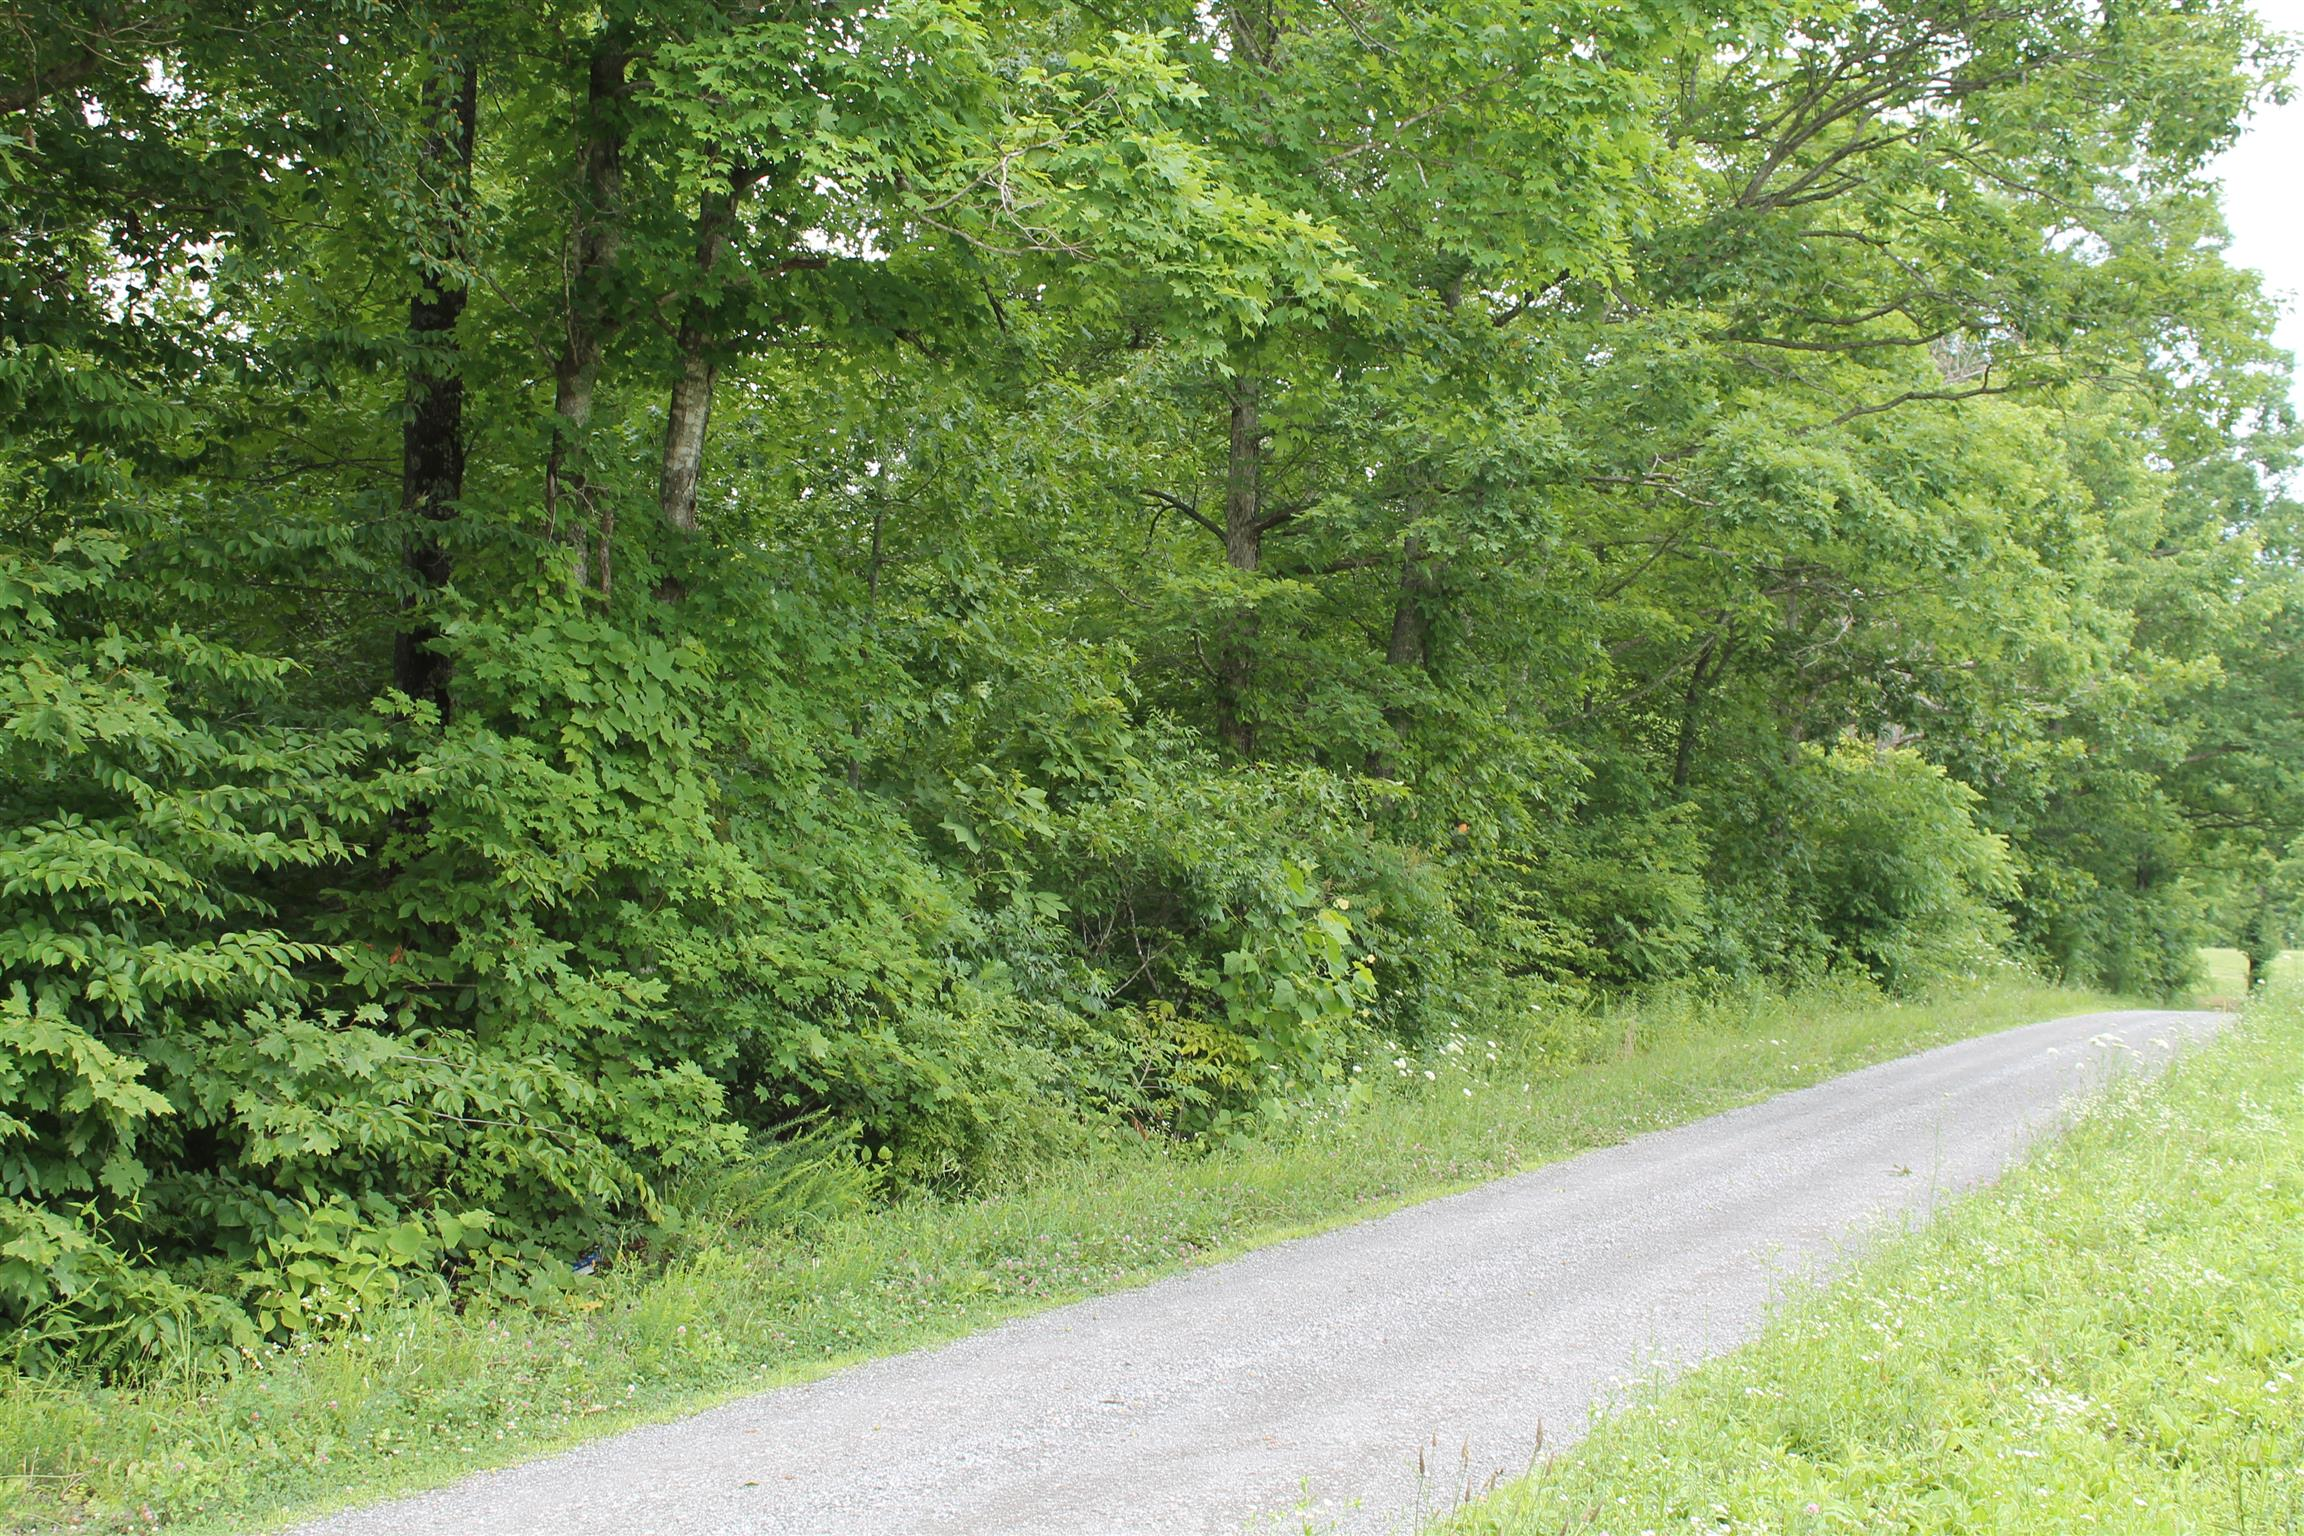 0 Hance Hollow Rd, Red Boiling Springs, TN 37150 - Red Boiling Springs, TN real estate listing